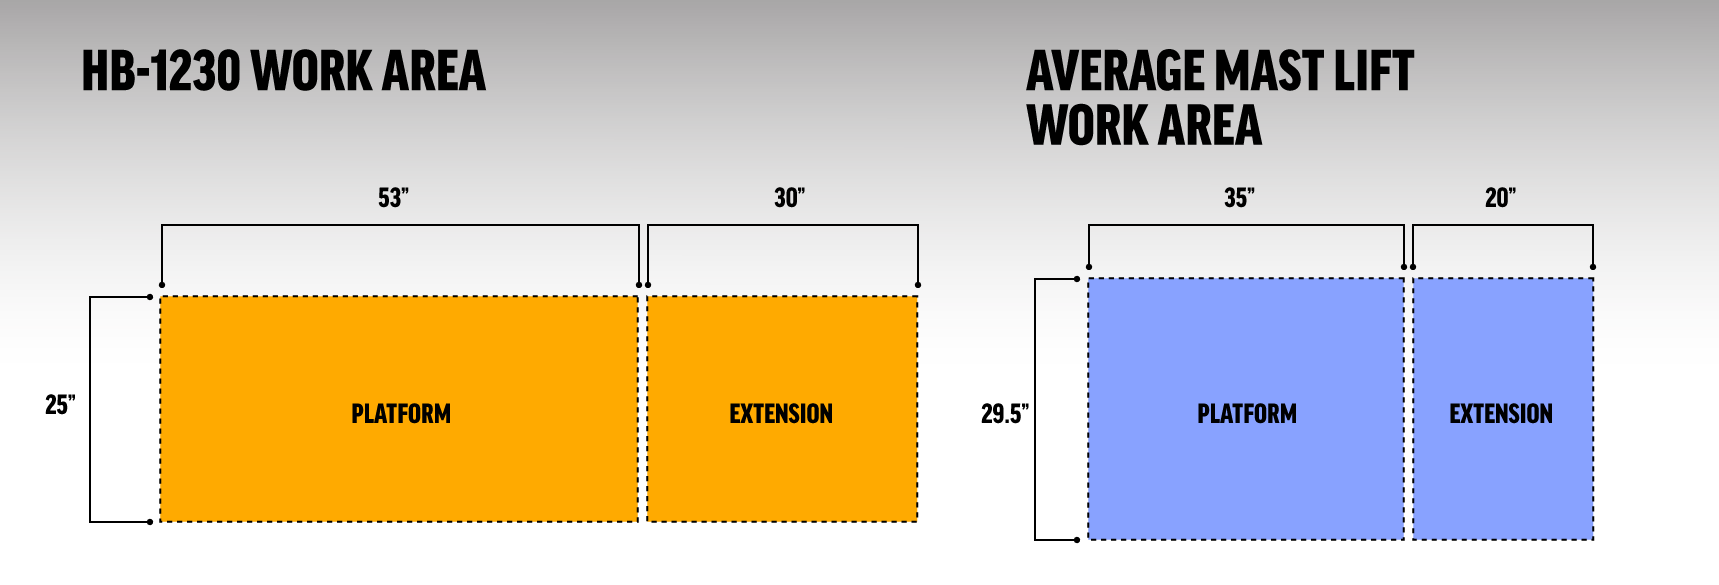 HB-1230 Work Area Comparison